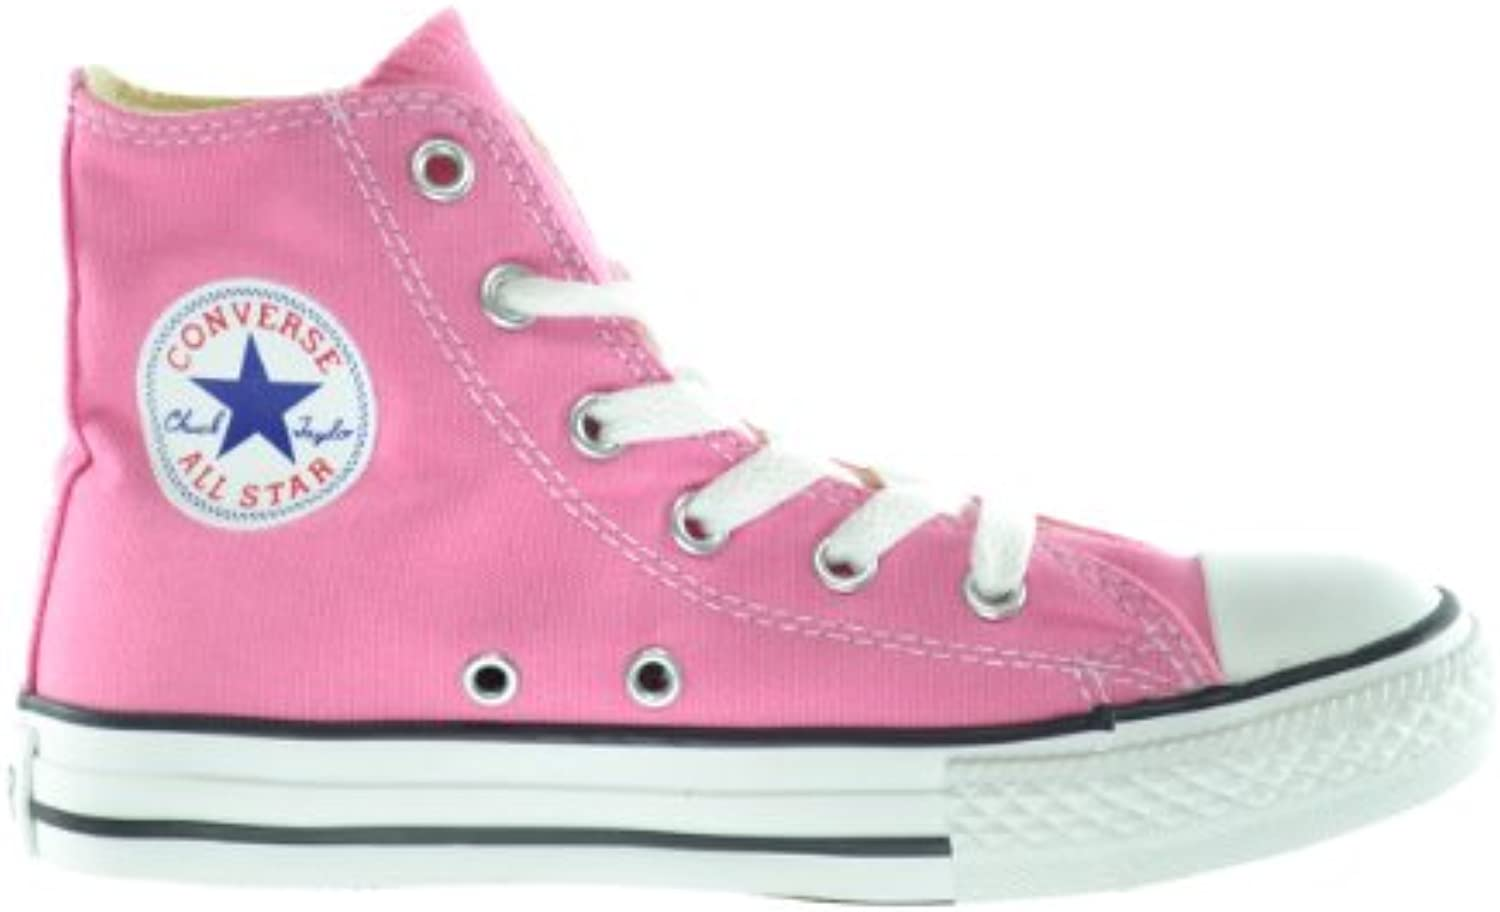 Converse All Star Hi Little Kids Fashion Sneakers Pink